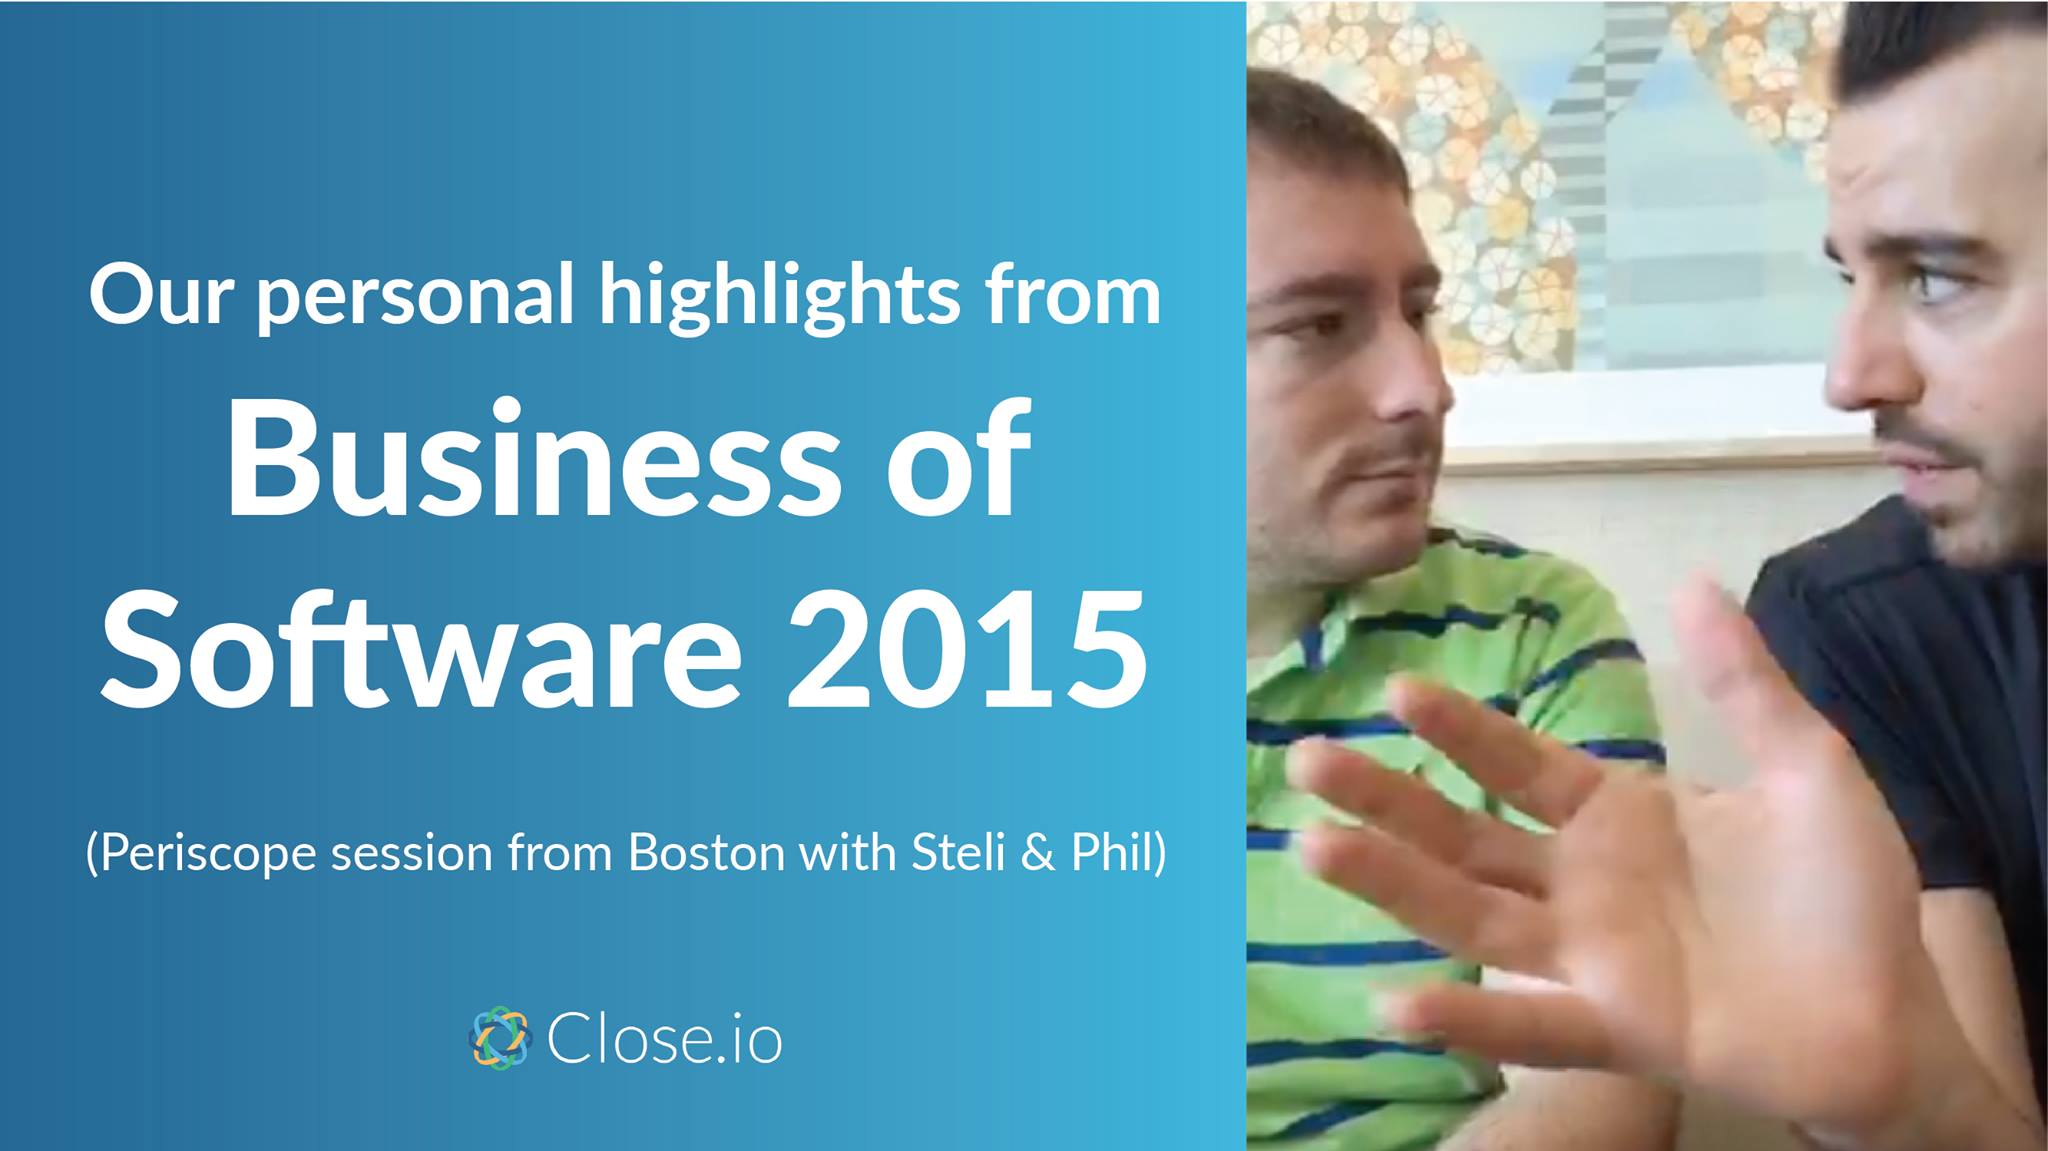 Business of Software 2015 Recap by Phil & Steli